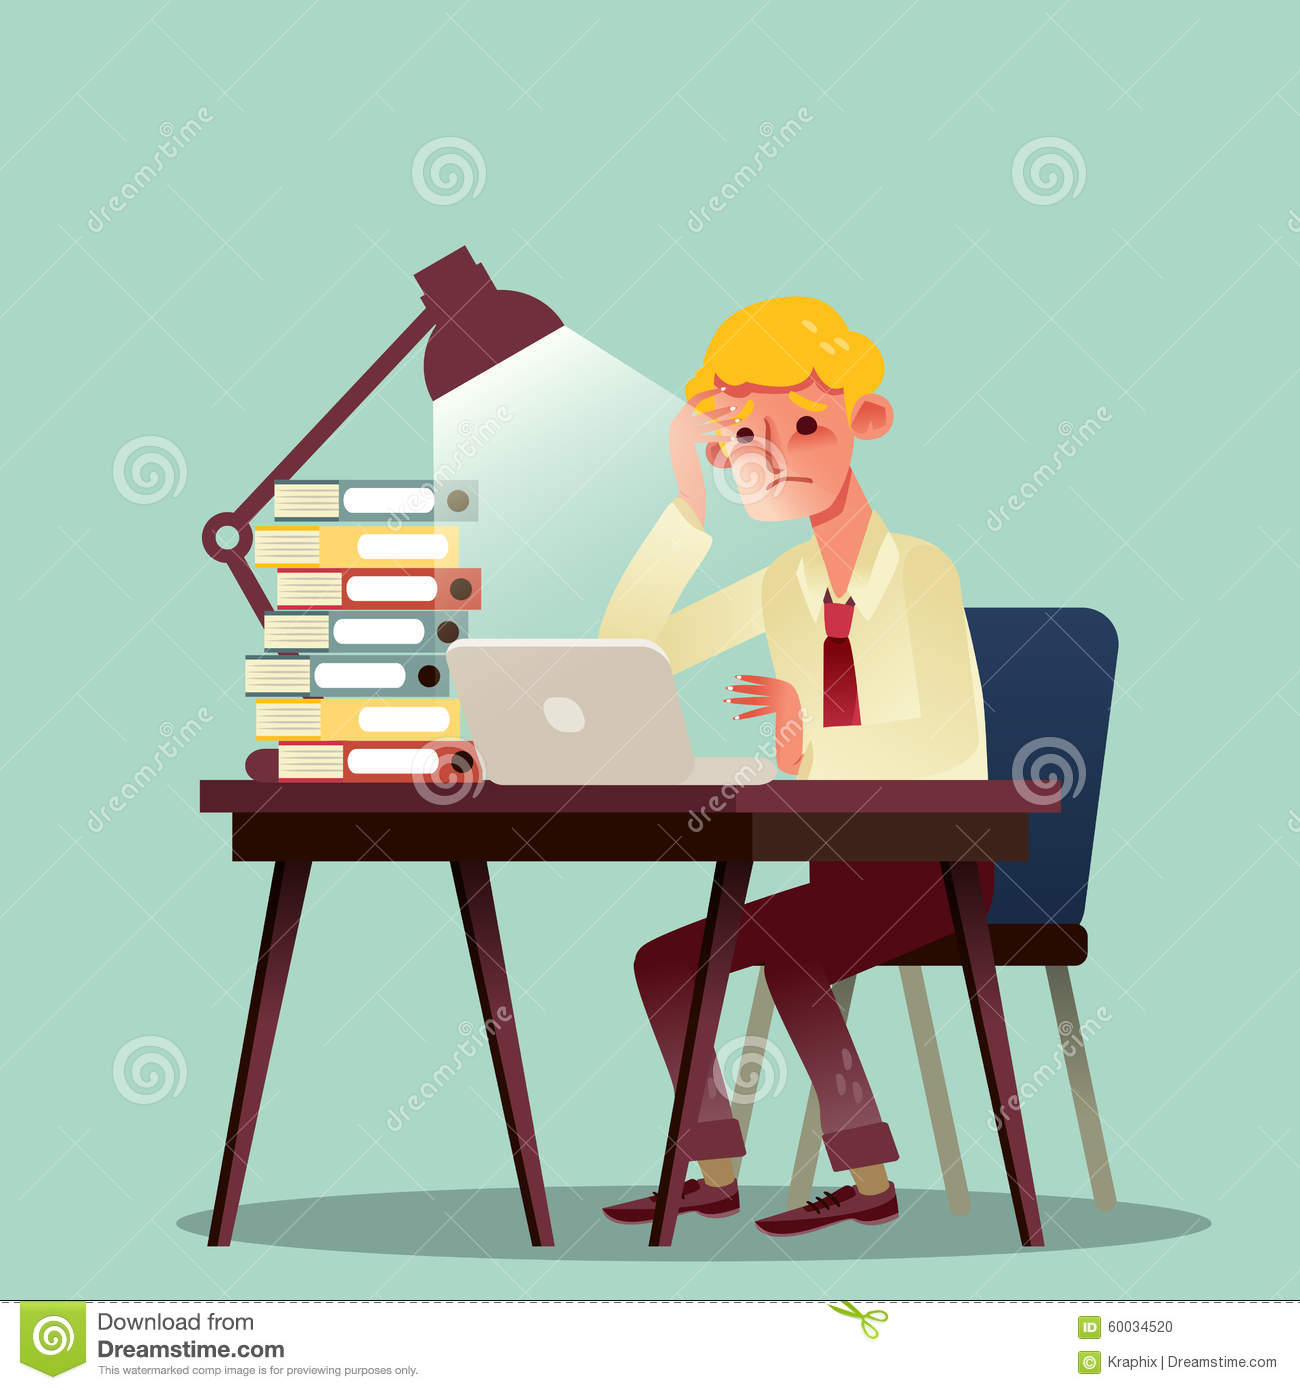 hard working person essay Argumentative essay: success takes hard work and work hard on essays and other if you do the same job as another person and you're equally.